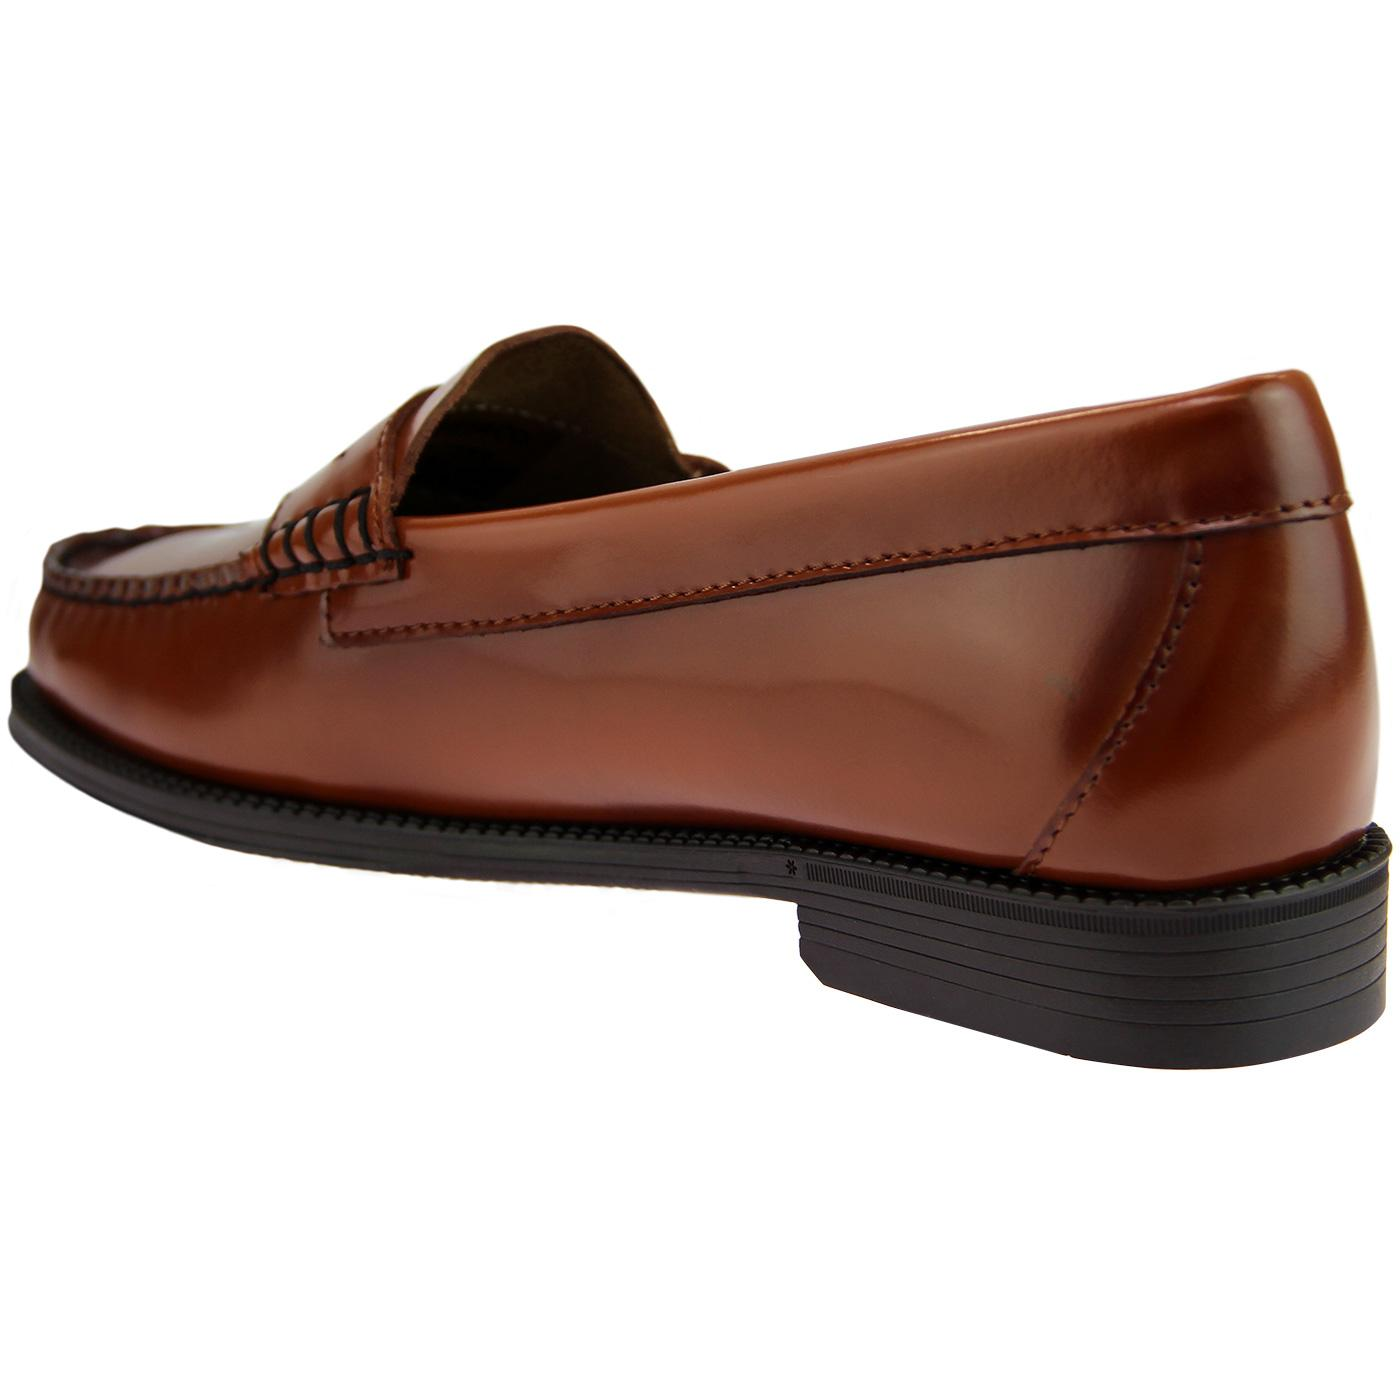 BASS WEEJUNS Women's 60's Penny Loafers in Cognac